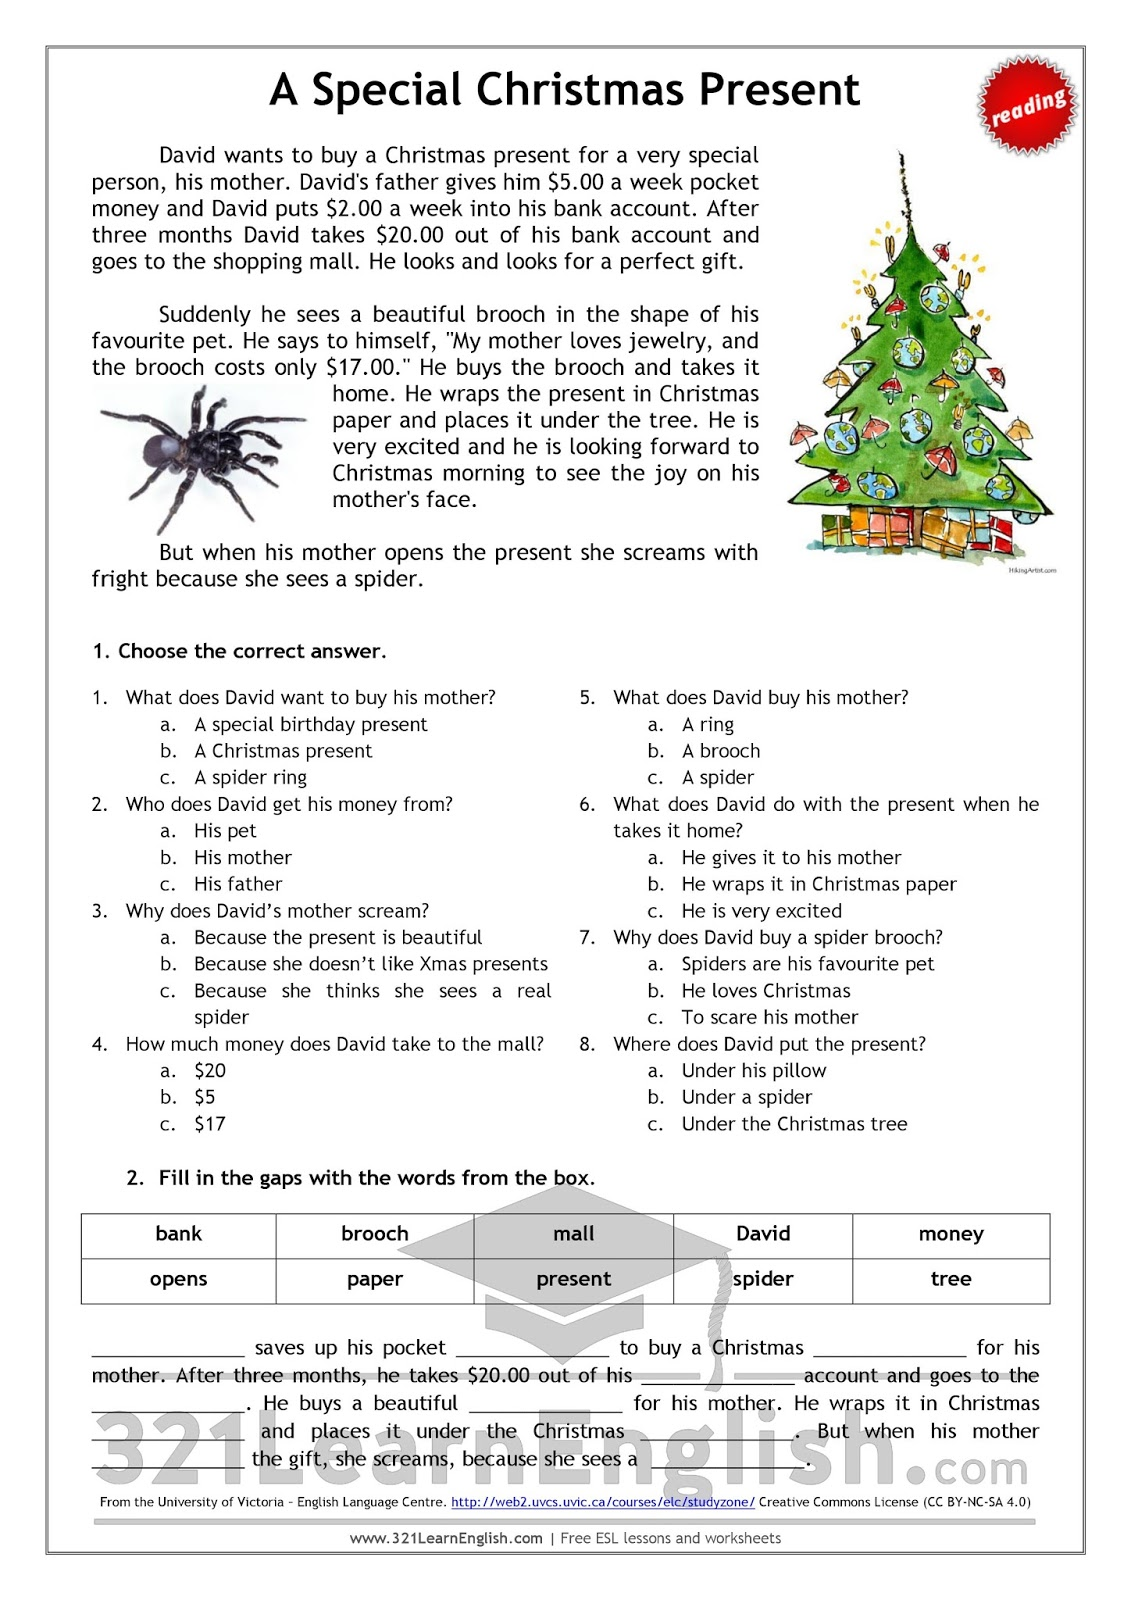 321 Learn English Reading A Special Christmas